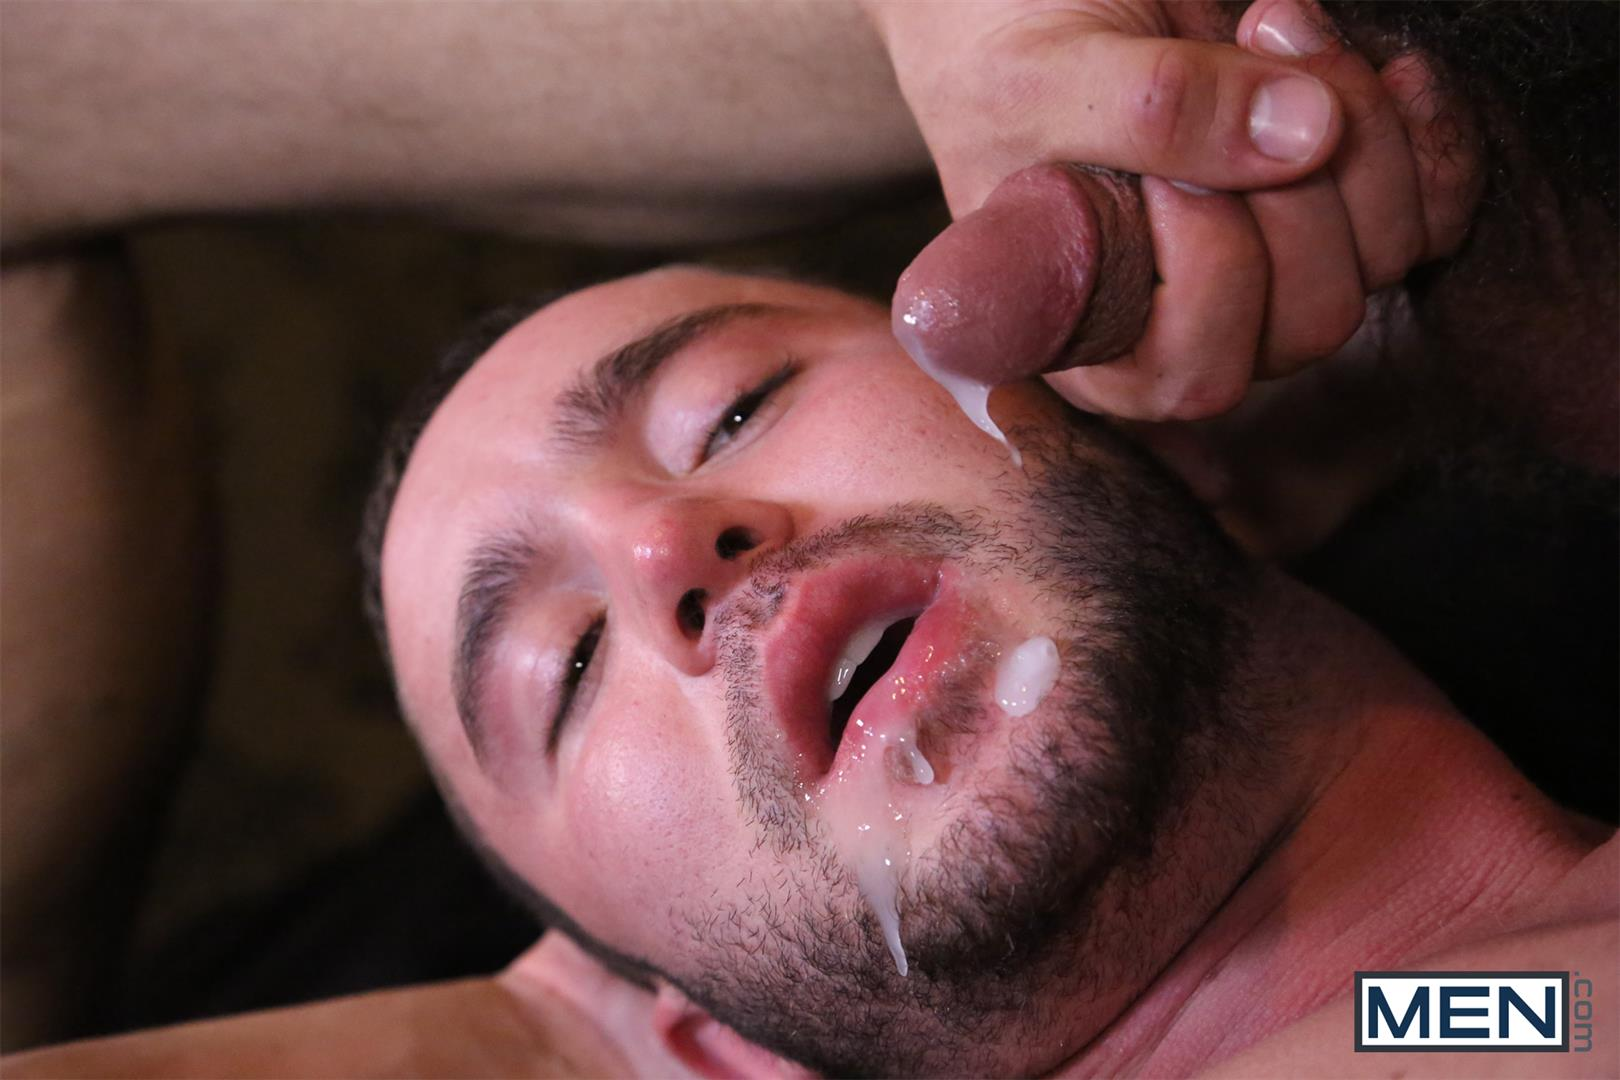 Gods-of-Men-Colt-Rivers-and-Dale-Cooper-Muscle-Hunks-Fucking-And-Cum-Facial-Amateur-Gay-Porn-20 Muscle Hunks Fucking Ends In A Face Full Of Cum